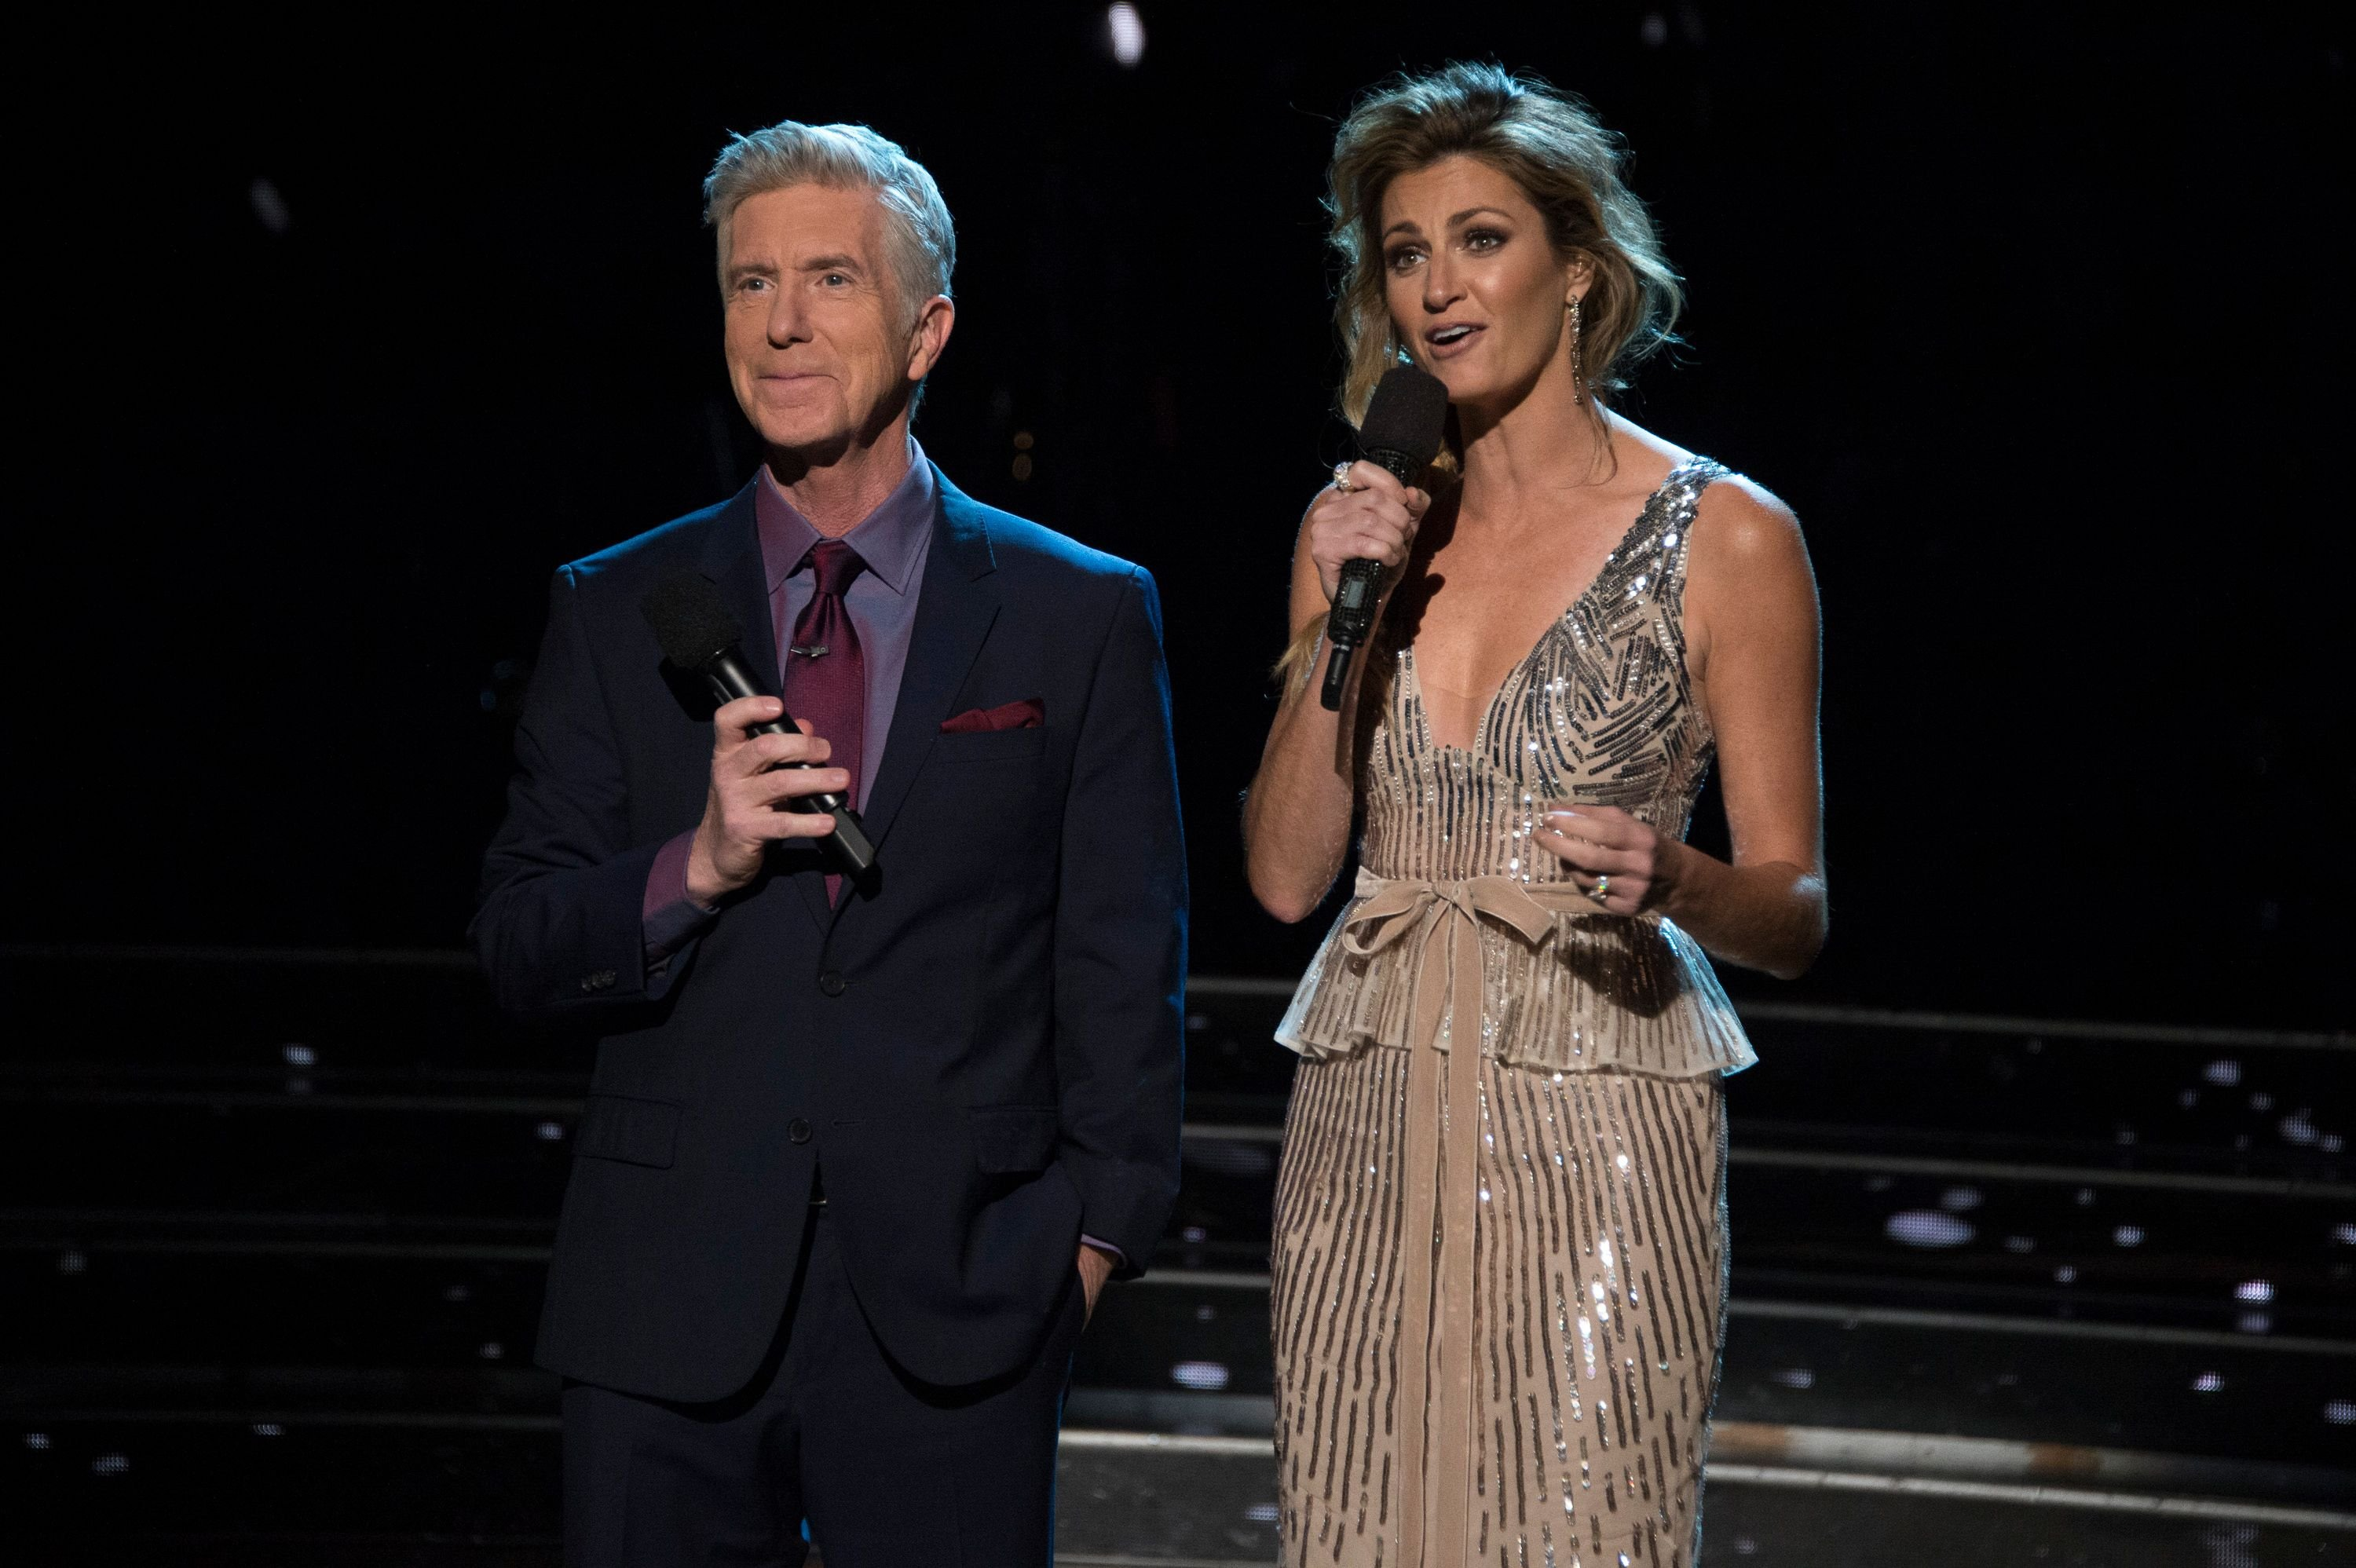 """Tom Bergeron and Erin Andrews at ABC's """"Dancing With the Stars"""" - Season 27 - Week Eight - SemiFinals on November 12, 2018 